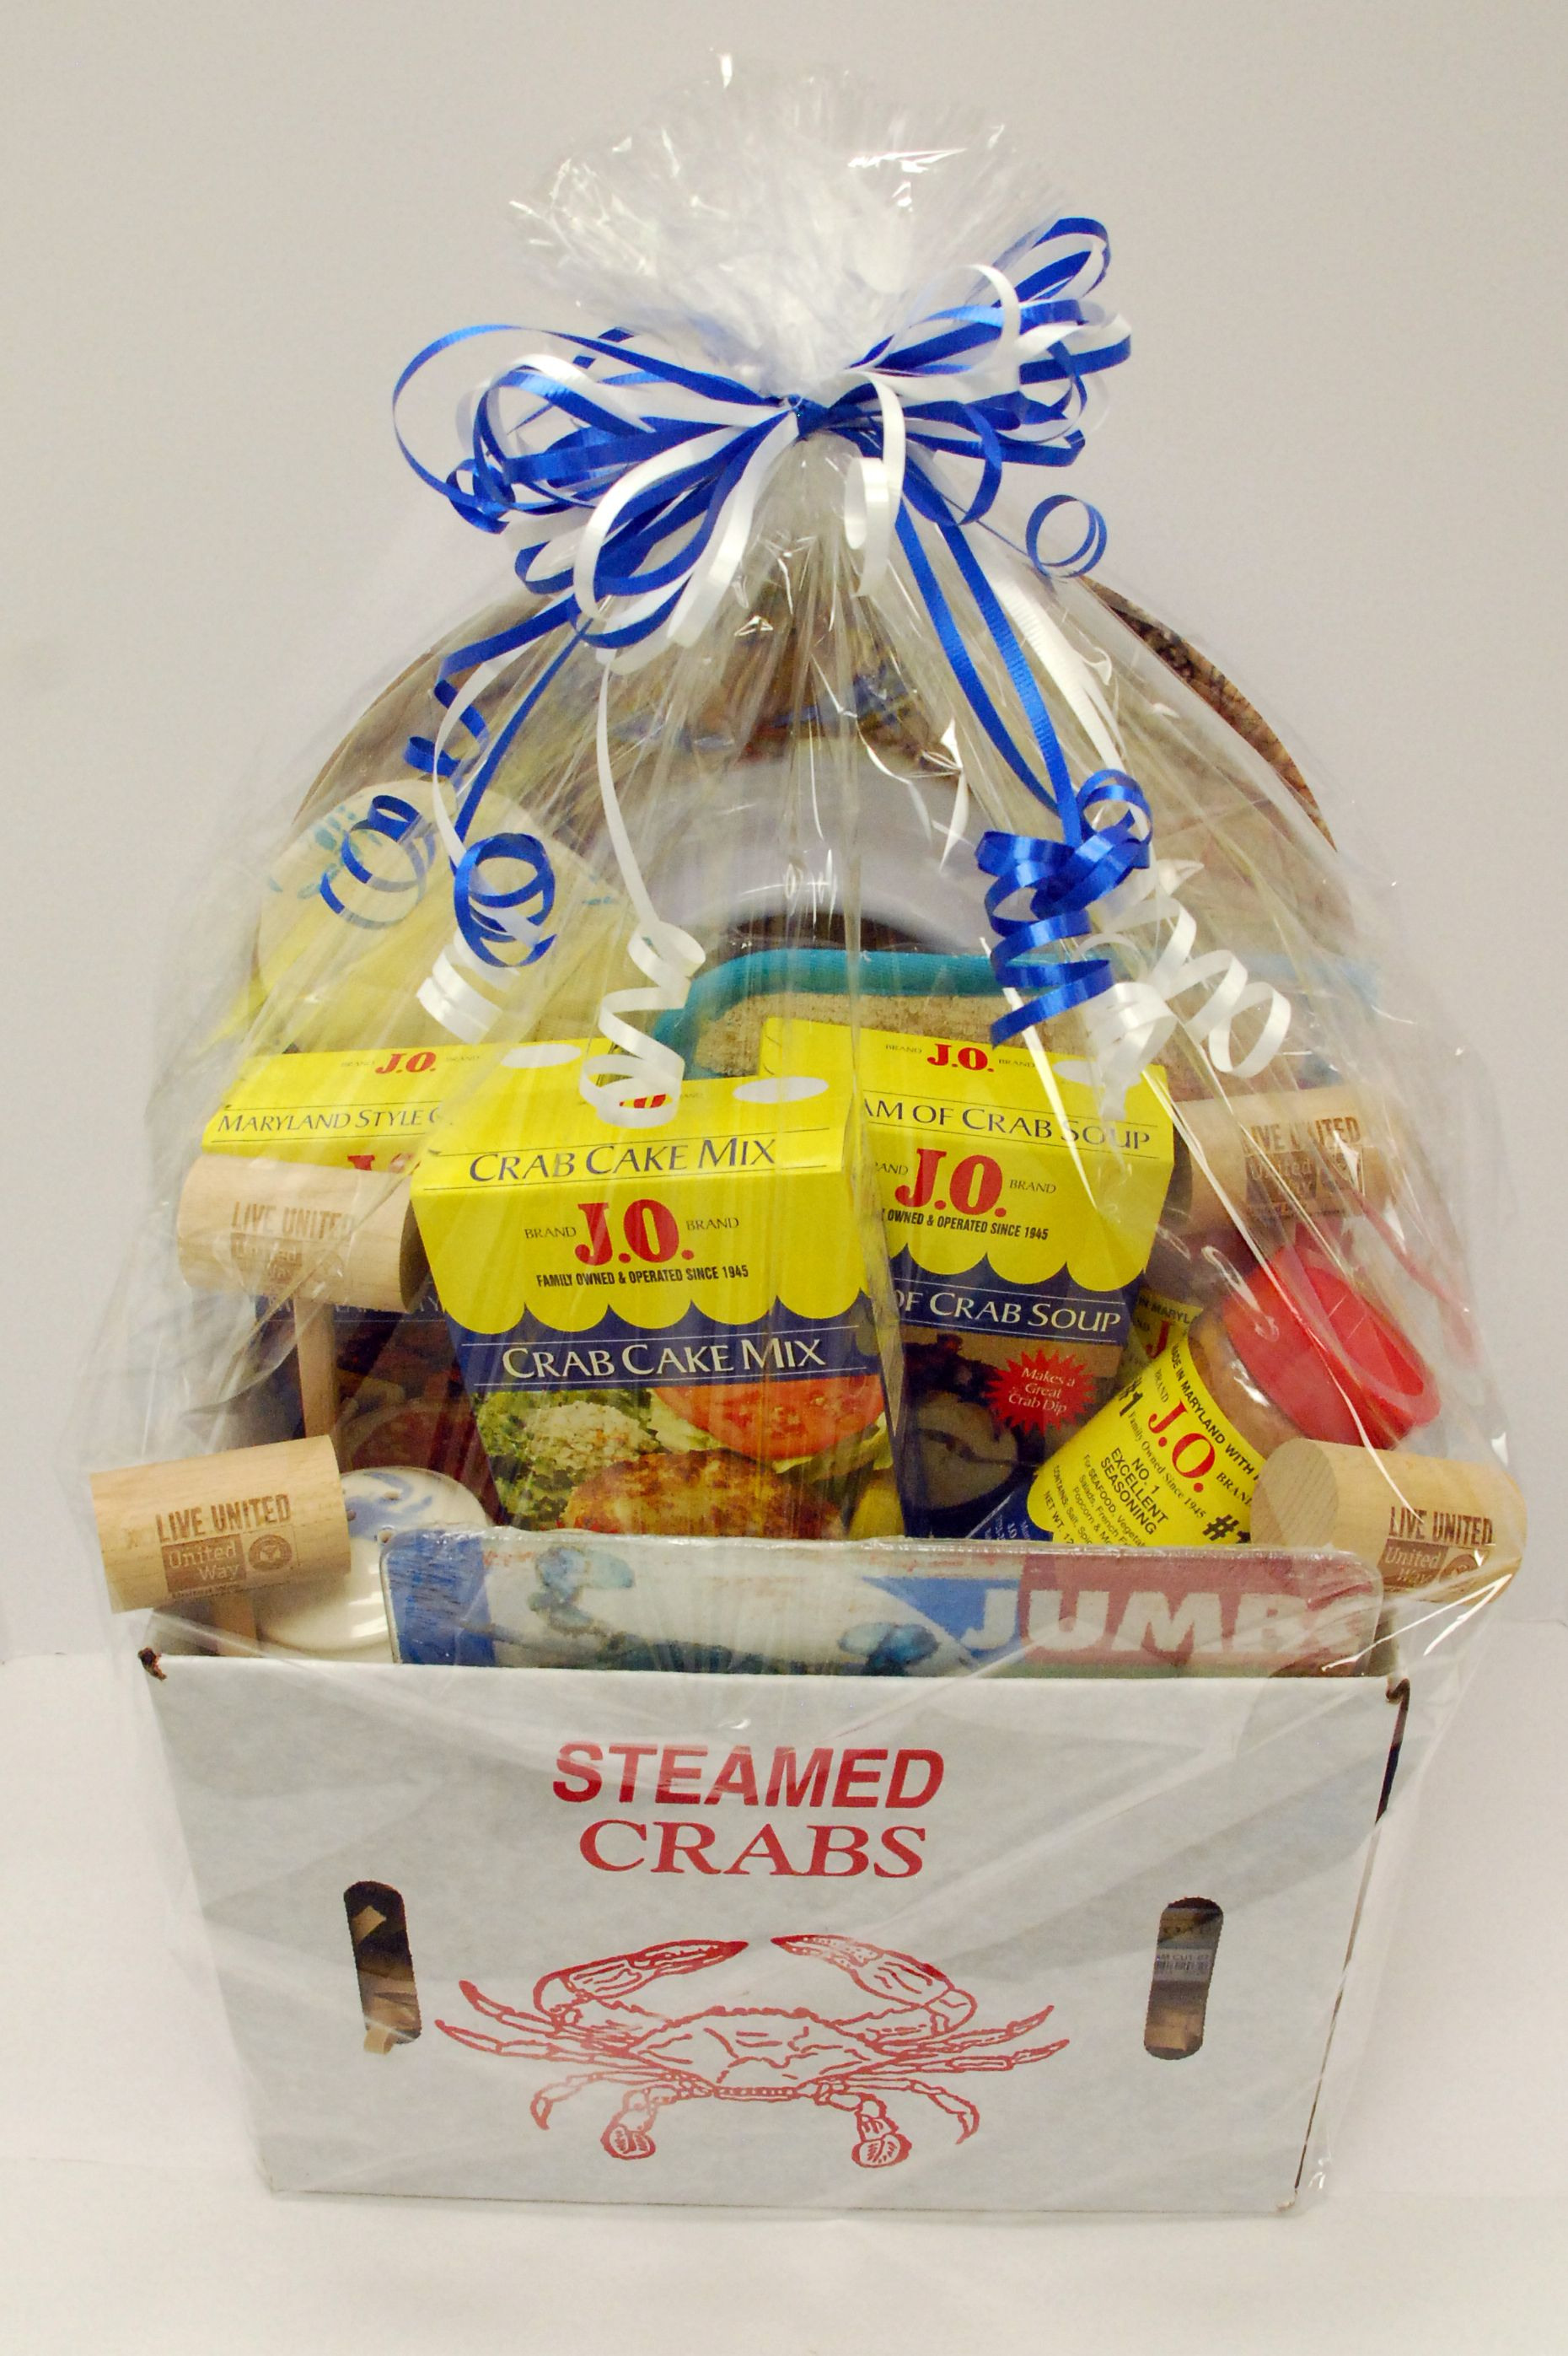 Live United! Check out our J.O. Spice fundraiser gift basket for ...